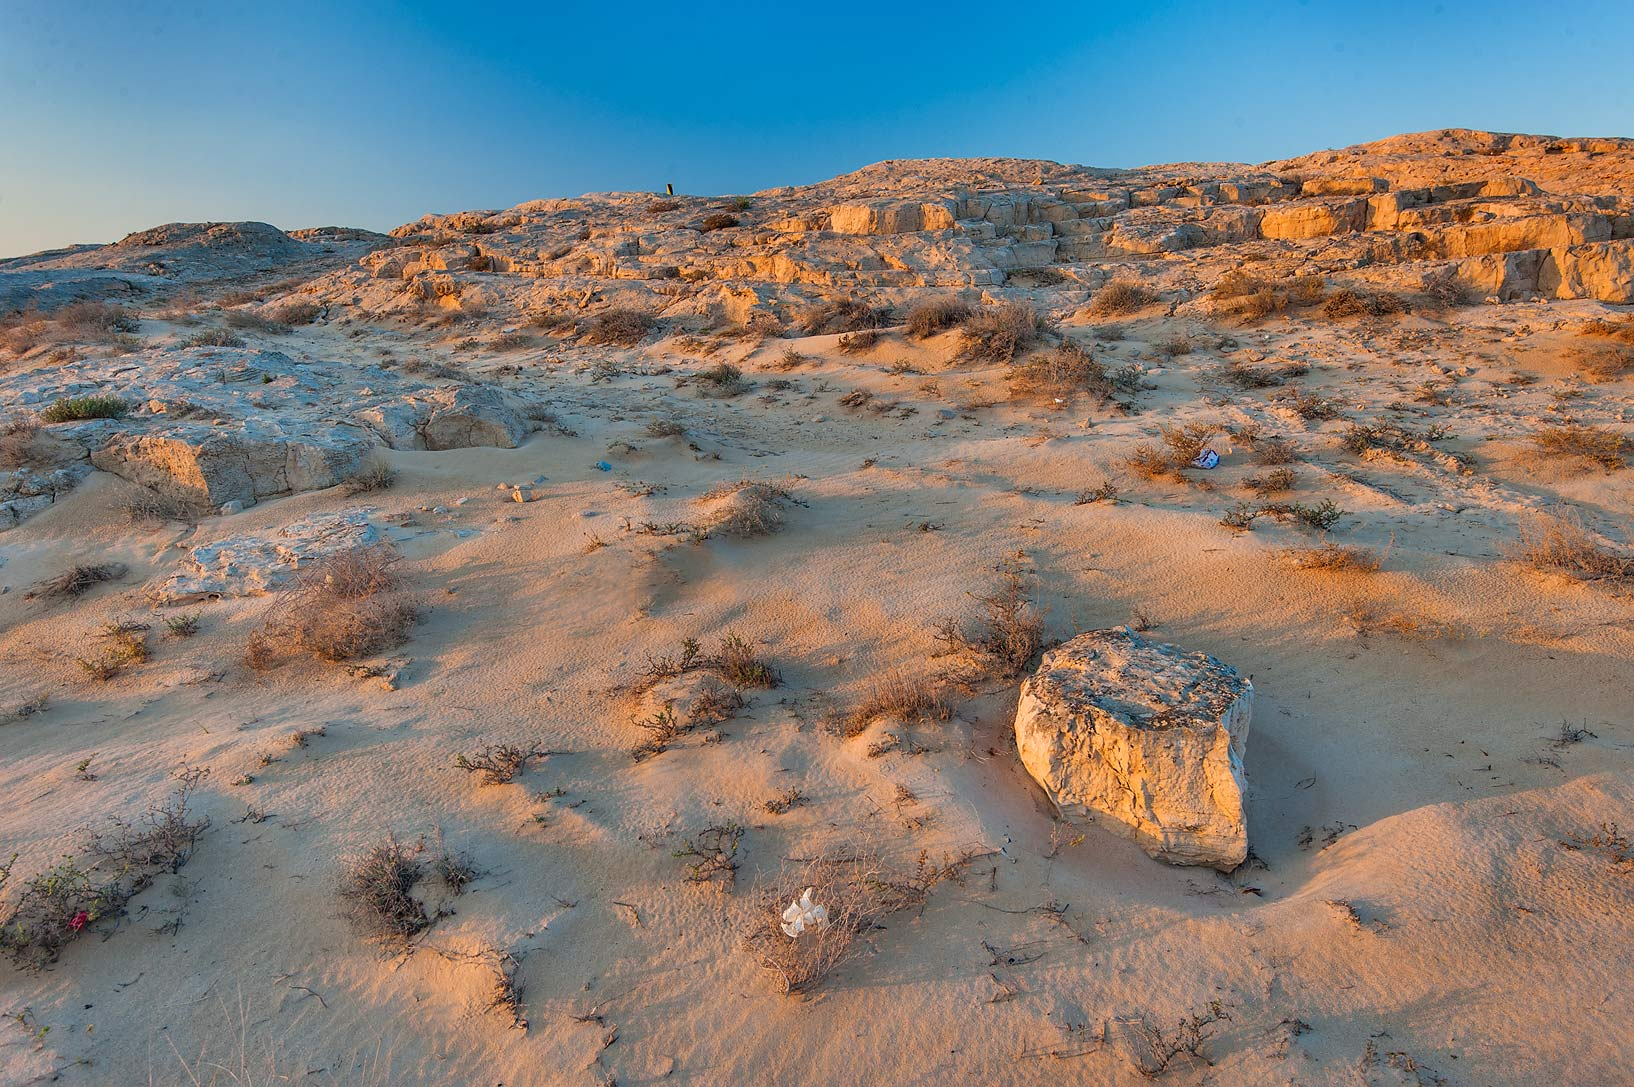 Stone hill of Jebel Fuwairit. North-eastern Qatar